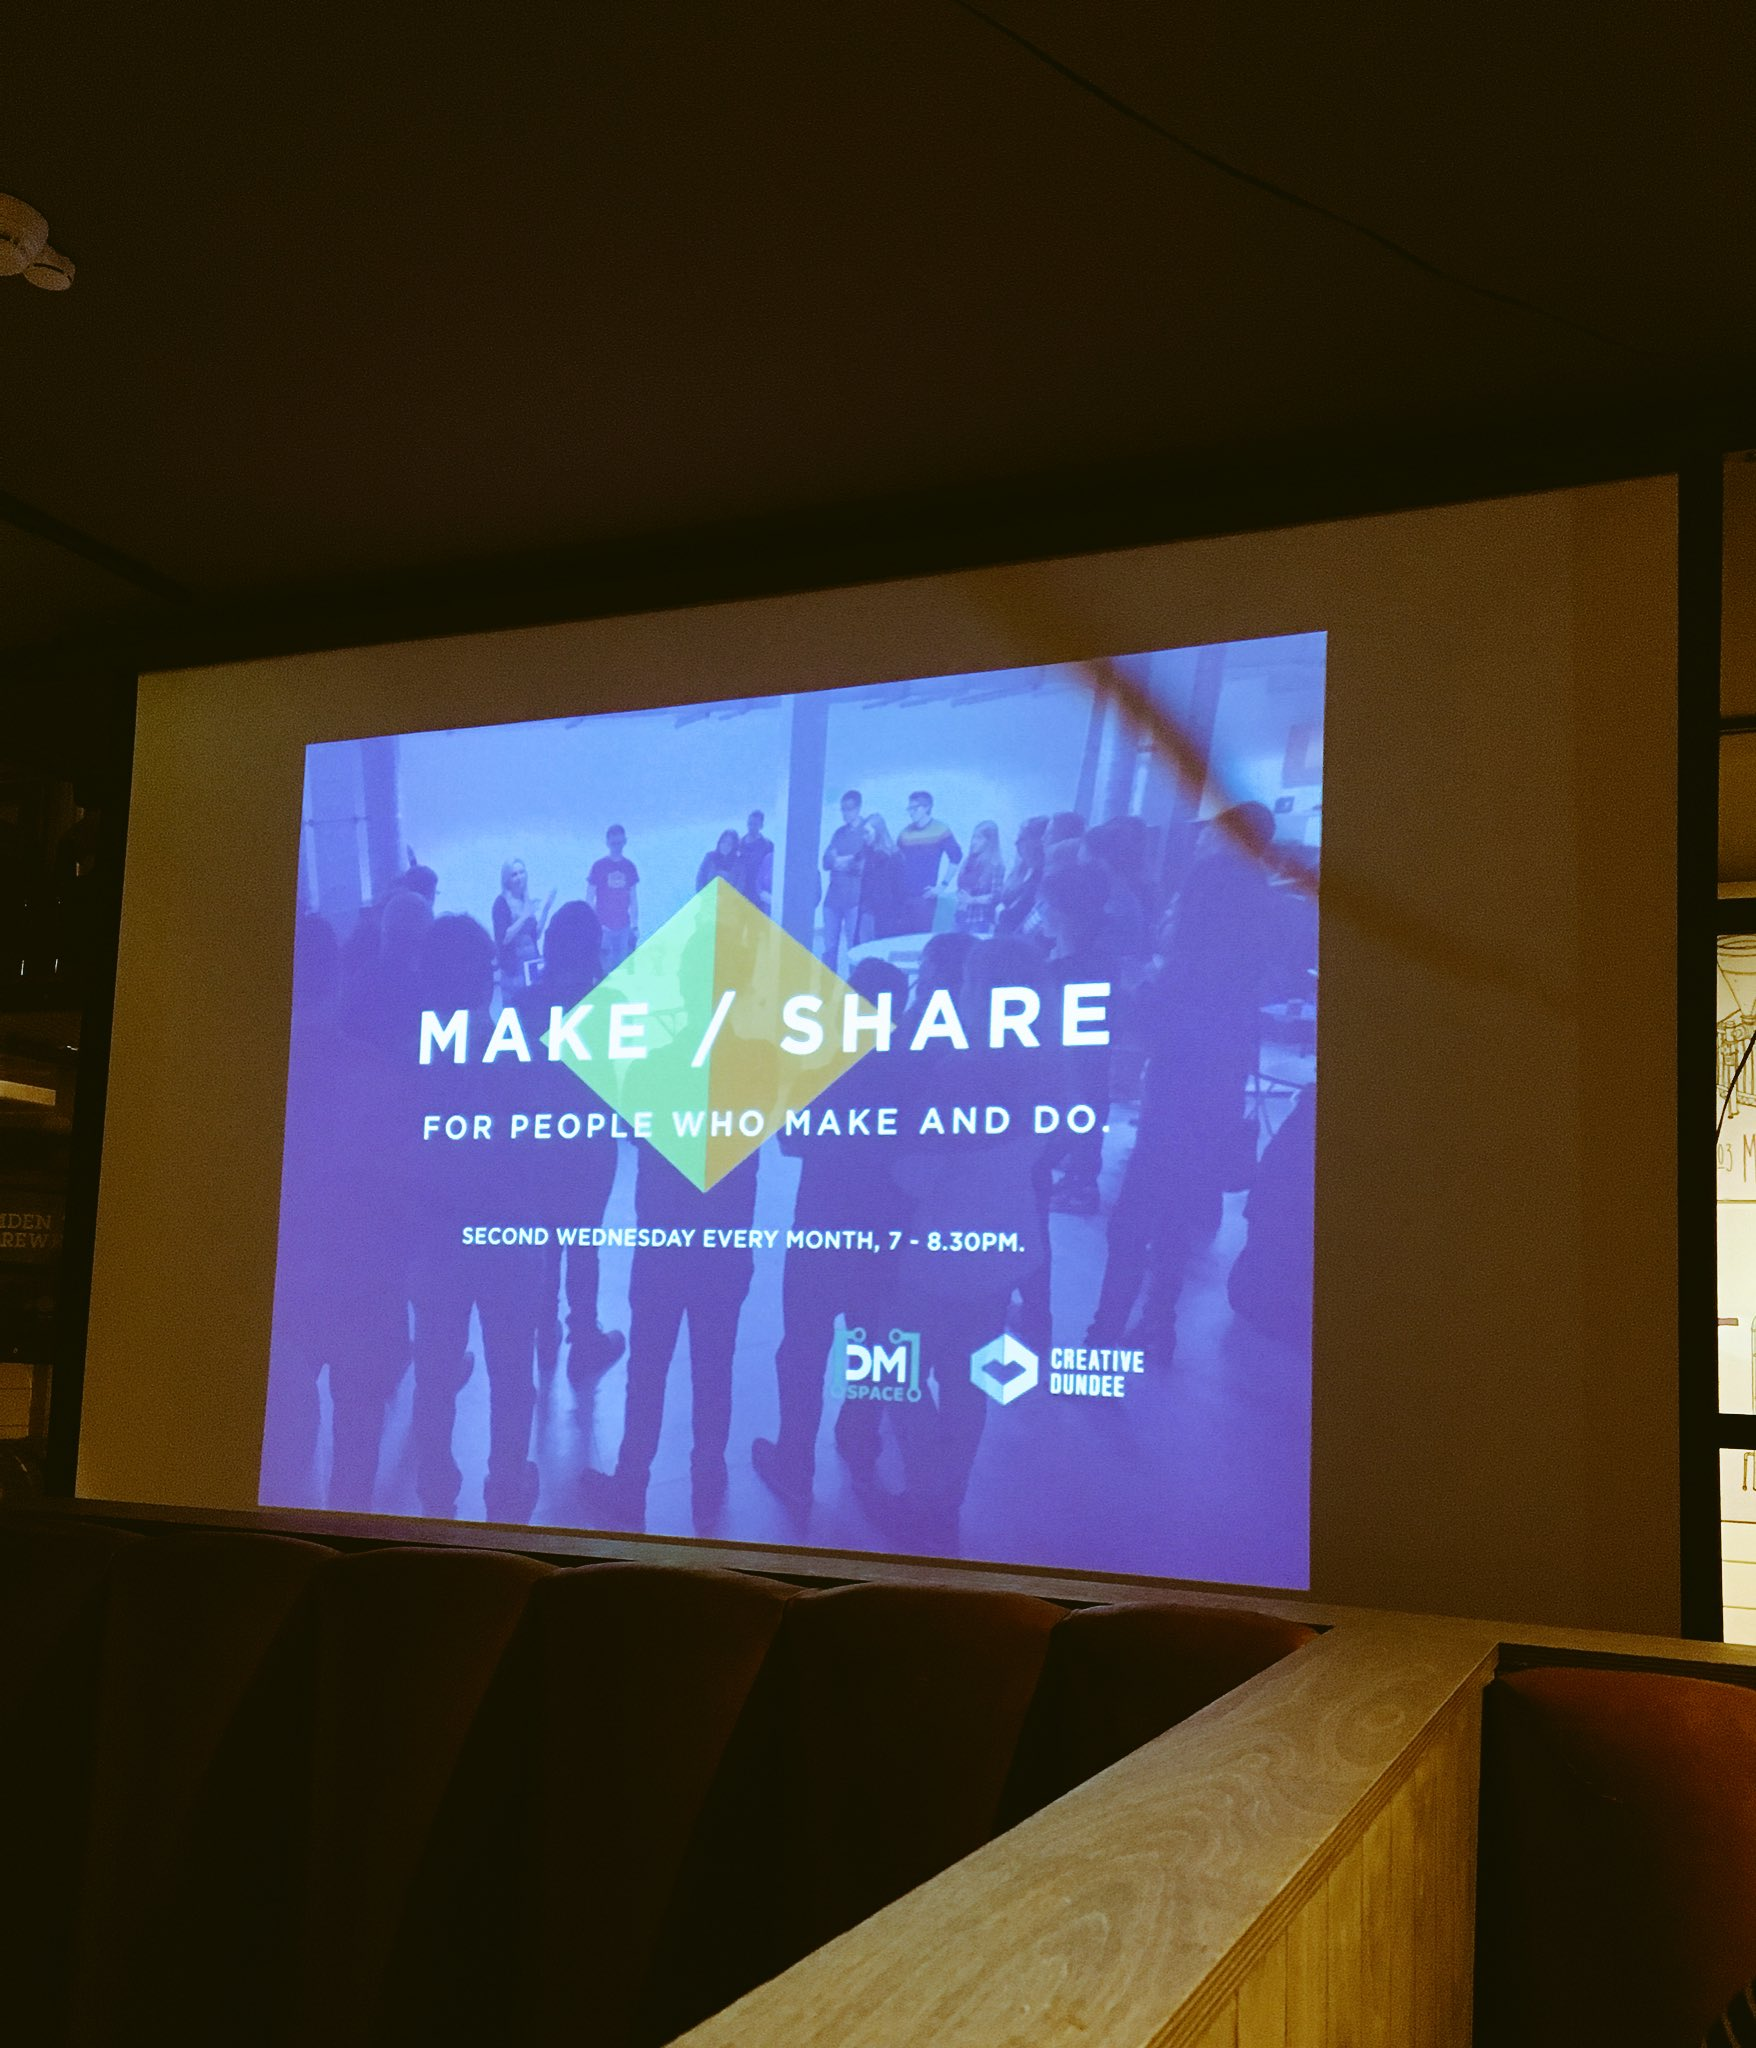 So inspiring to hear about design processes and upcoming projects at the #makeshare event tonight! #cbdsn https://t.co/63cAEHBDvz